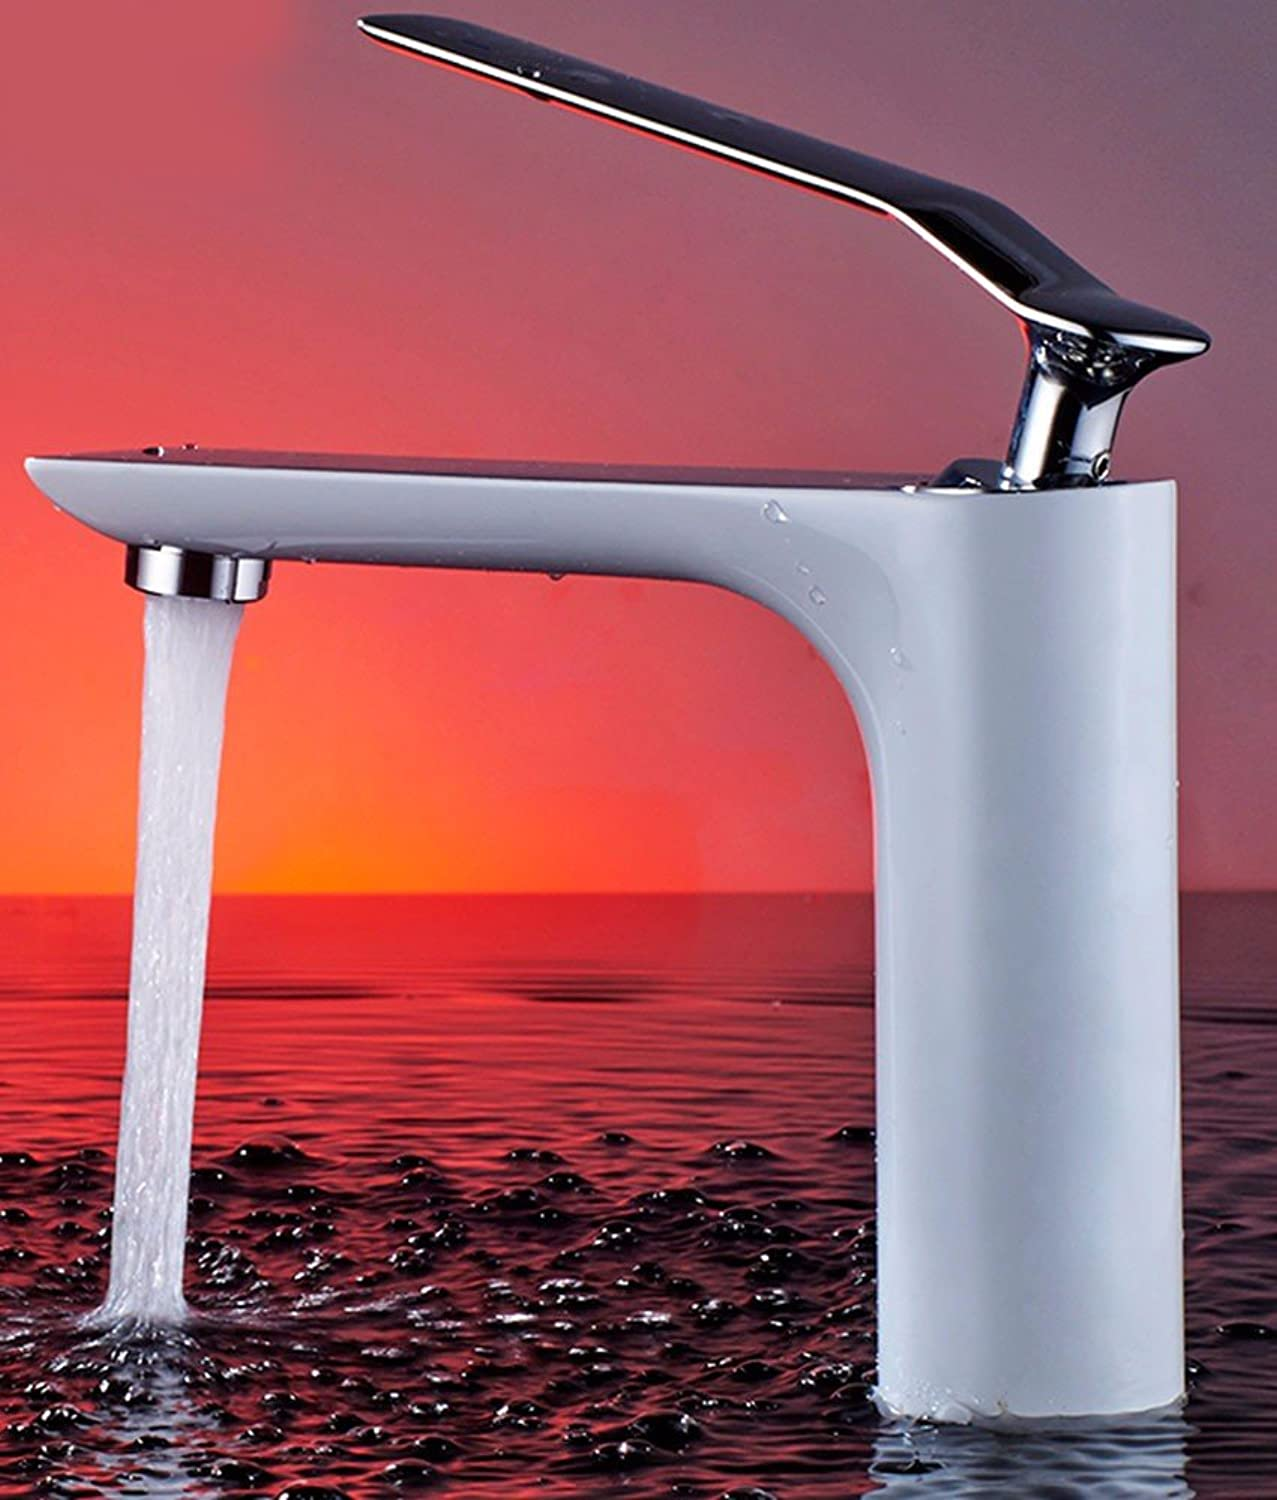 LHbox Basin Mixer Tap Bathroom Sink Faucet The bathroom is in white color, paint, basin, Single Hole, cold water faucet, 9